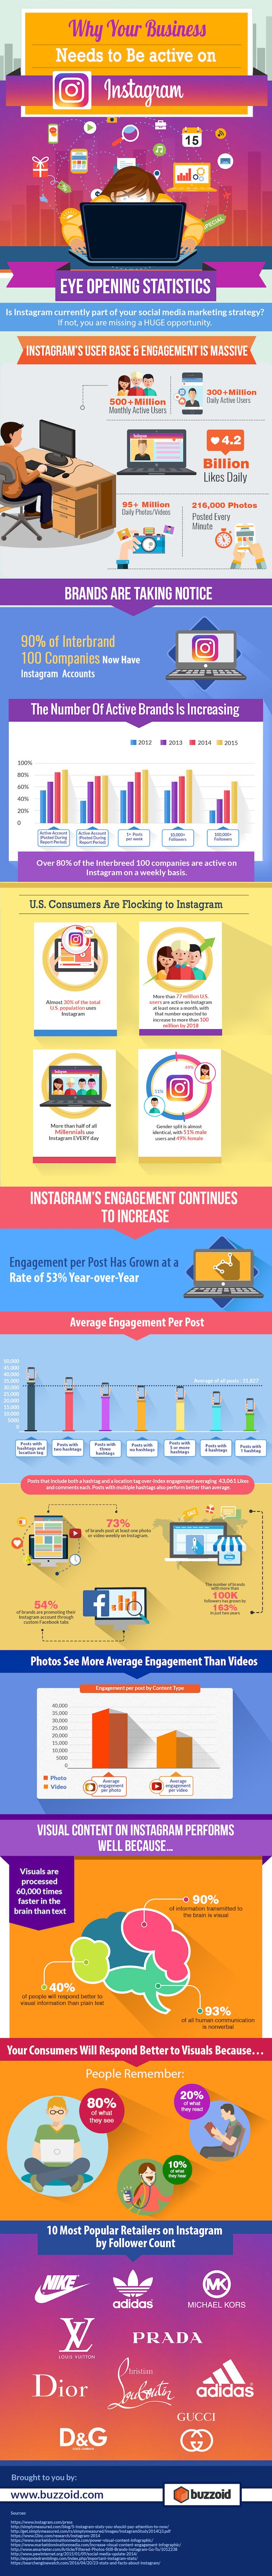 https://social-media-strategy-template.blogspot.com/ Why Instagram Needs to Be Part of Your Marketing Strategy (Infographic)